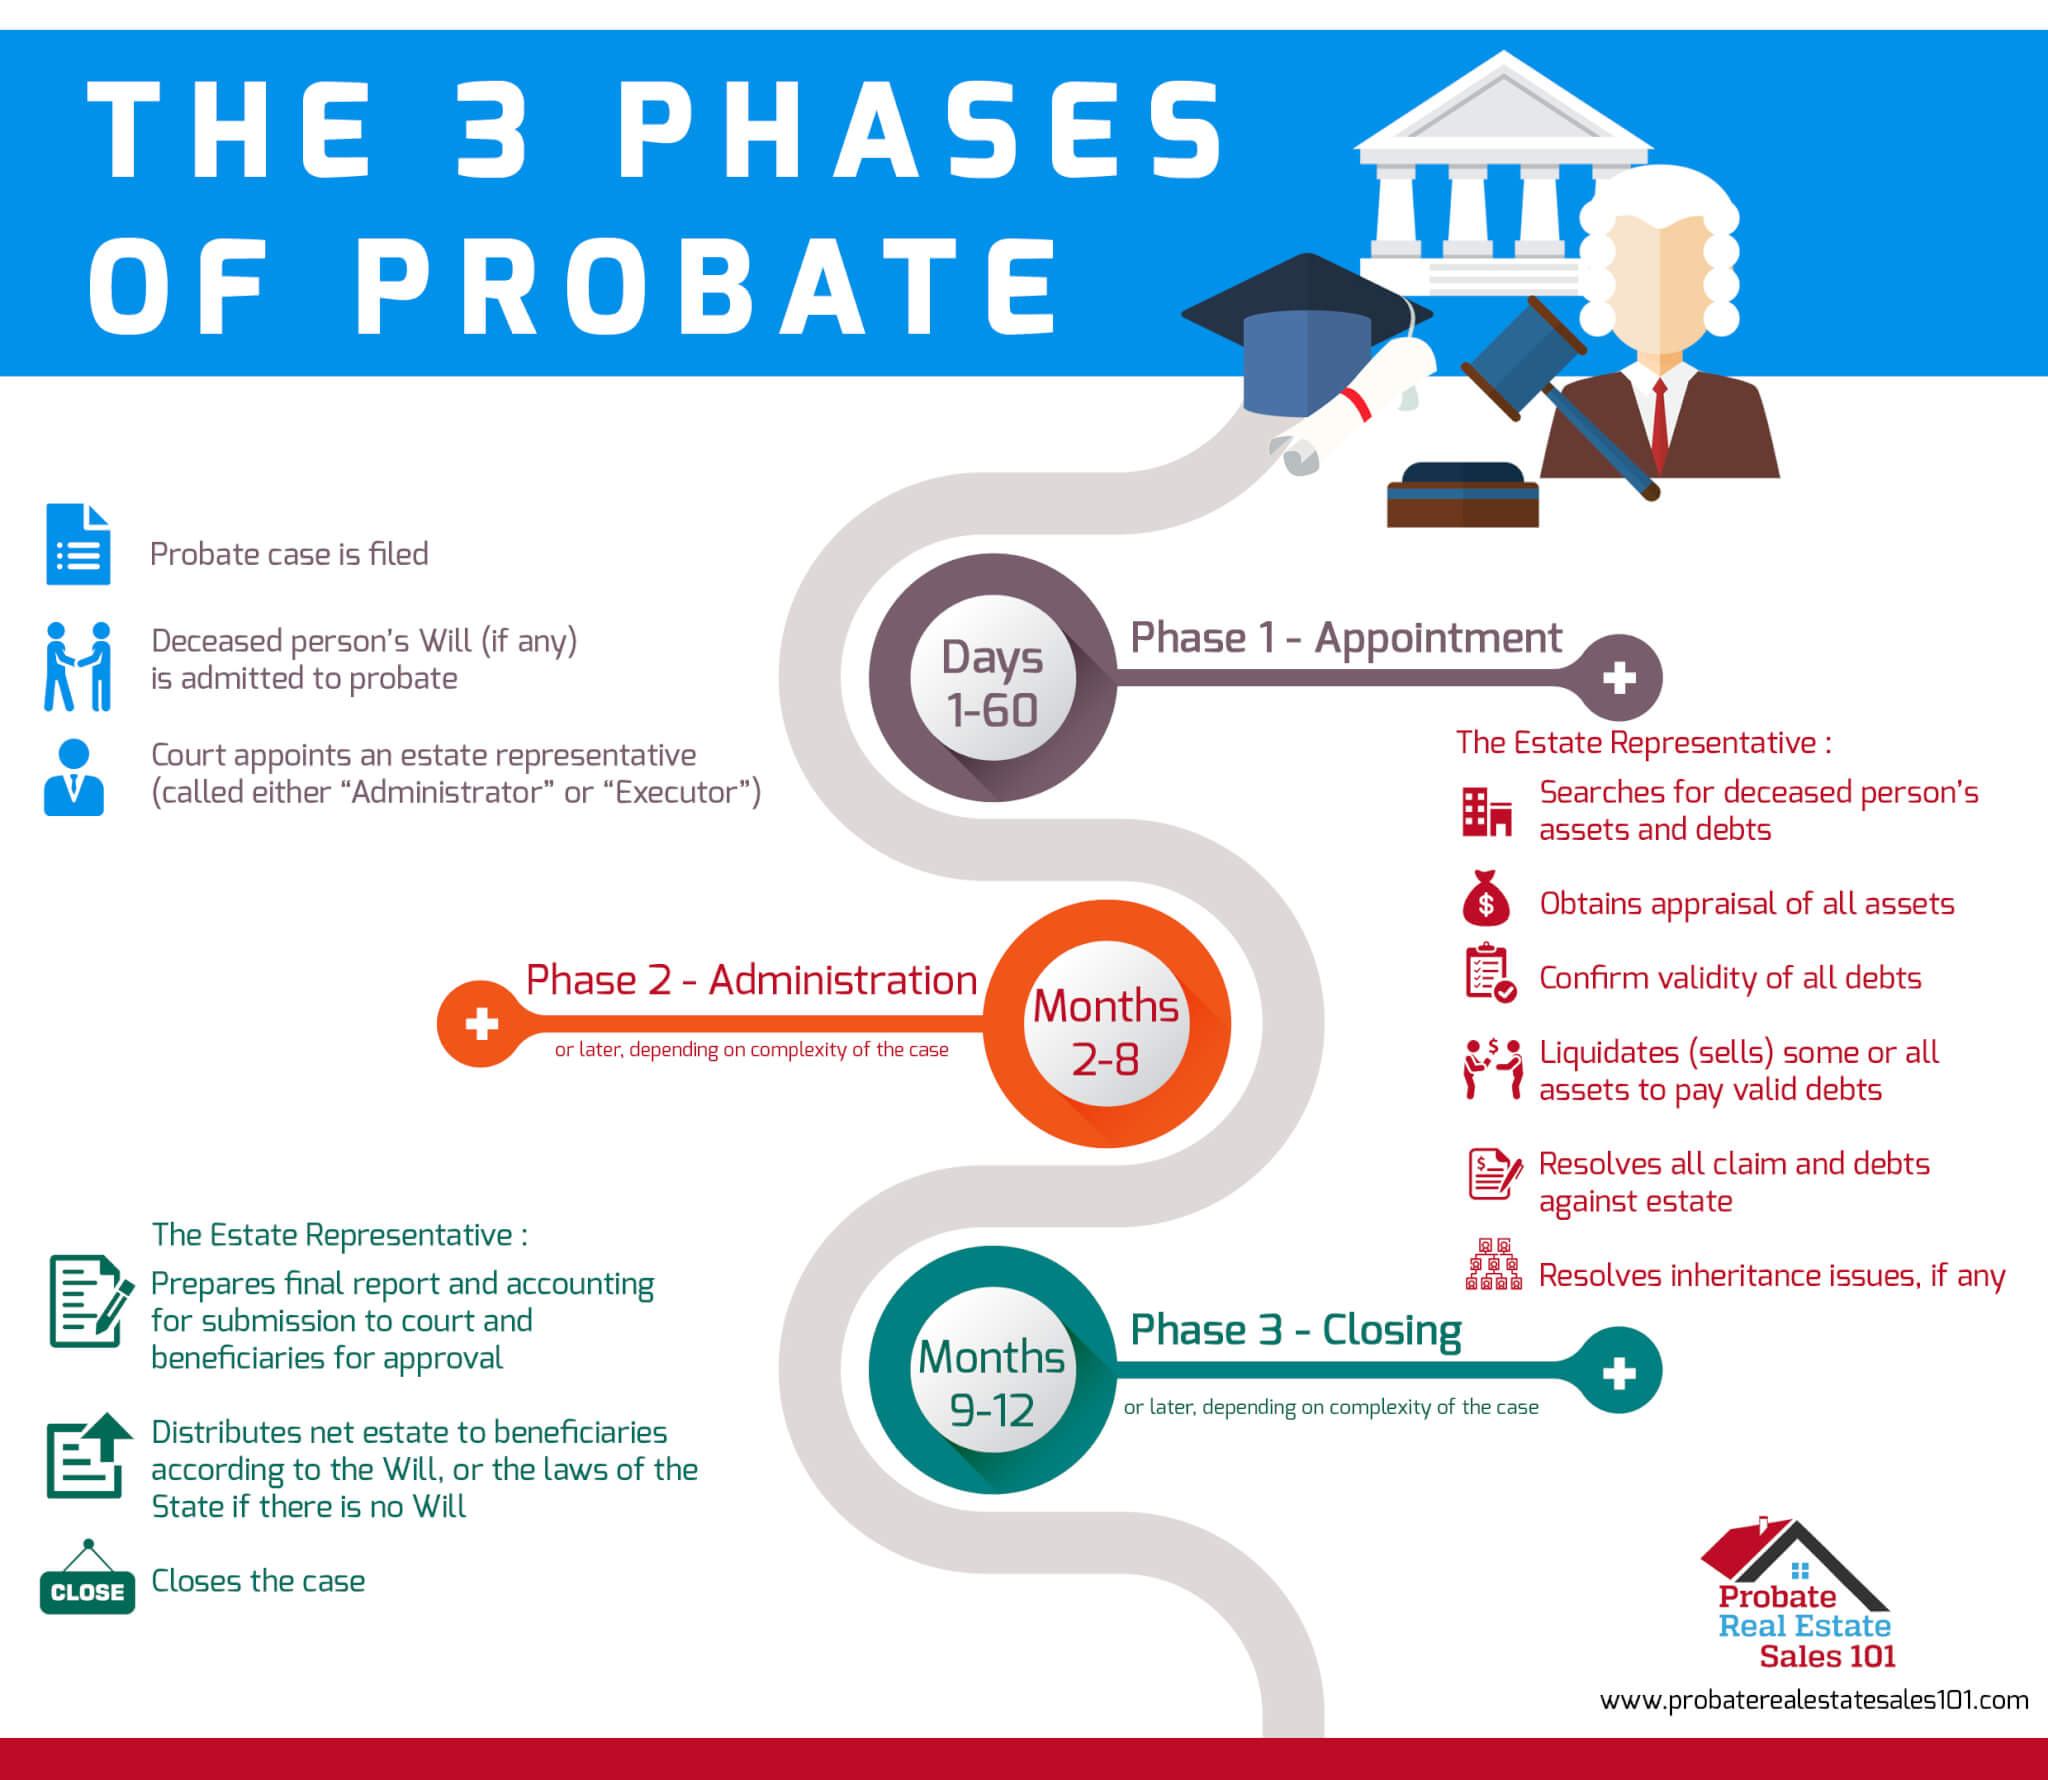 3 Phases of Probate Infographic